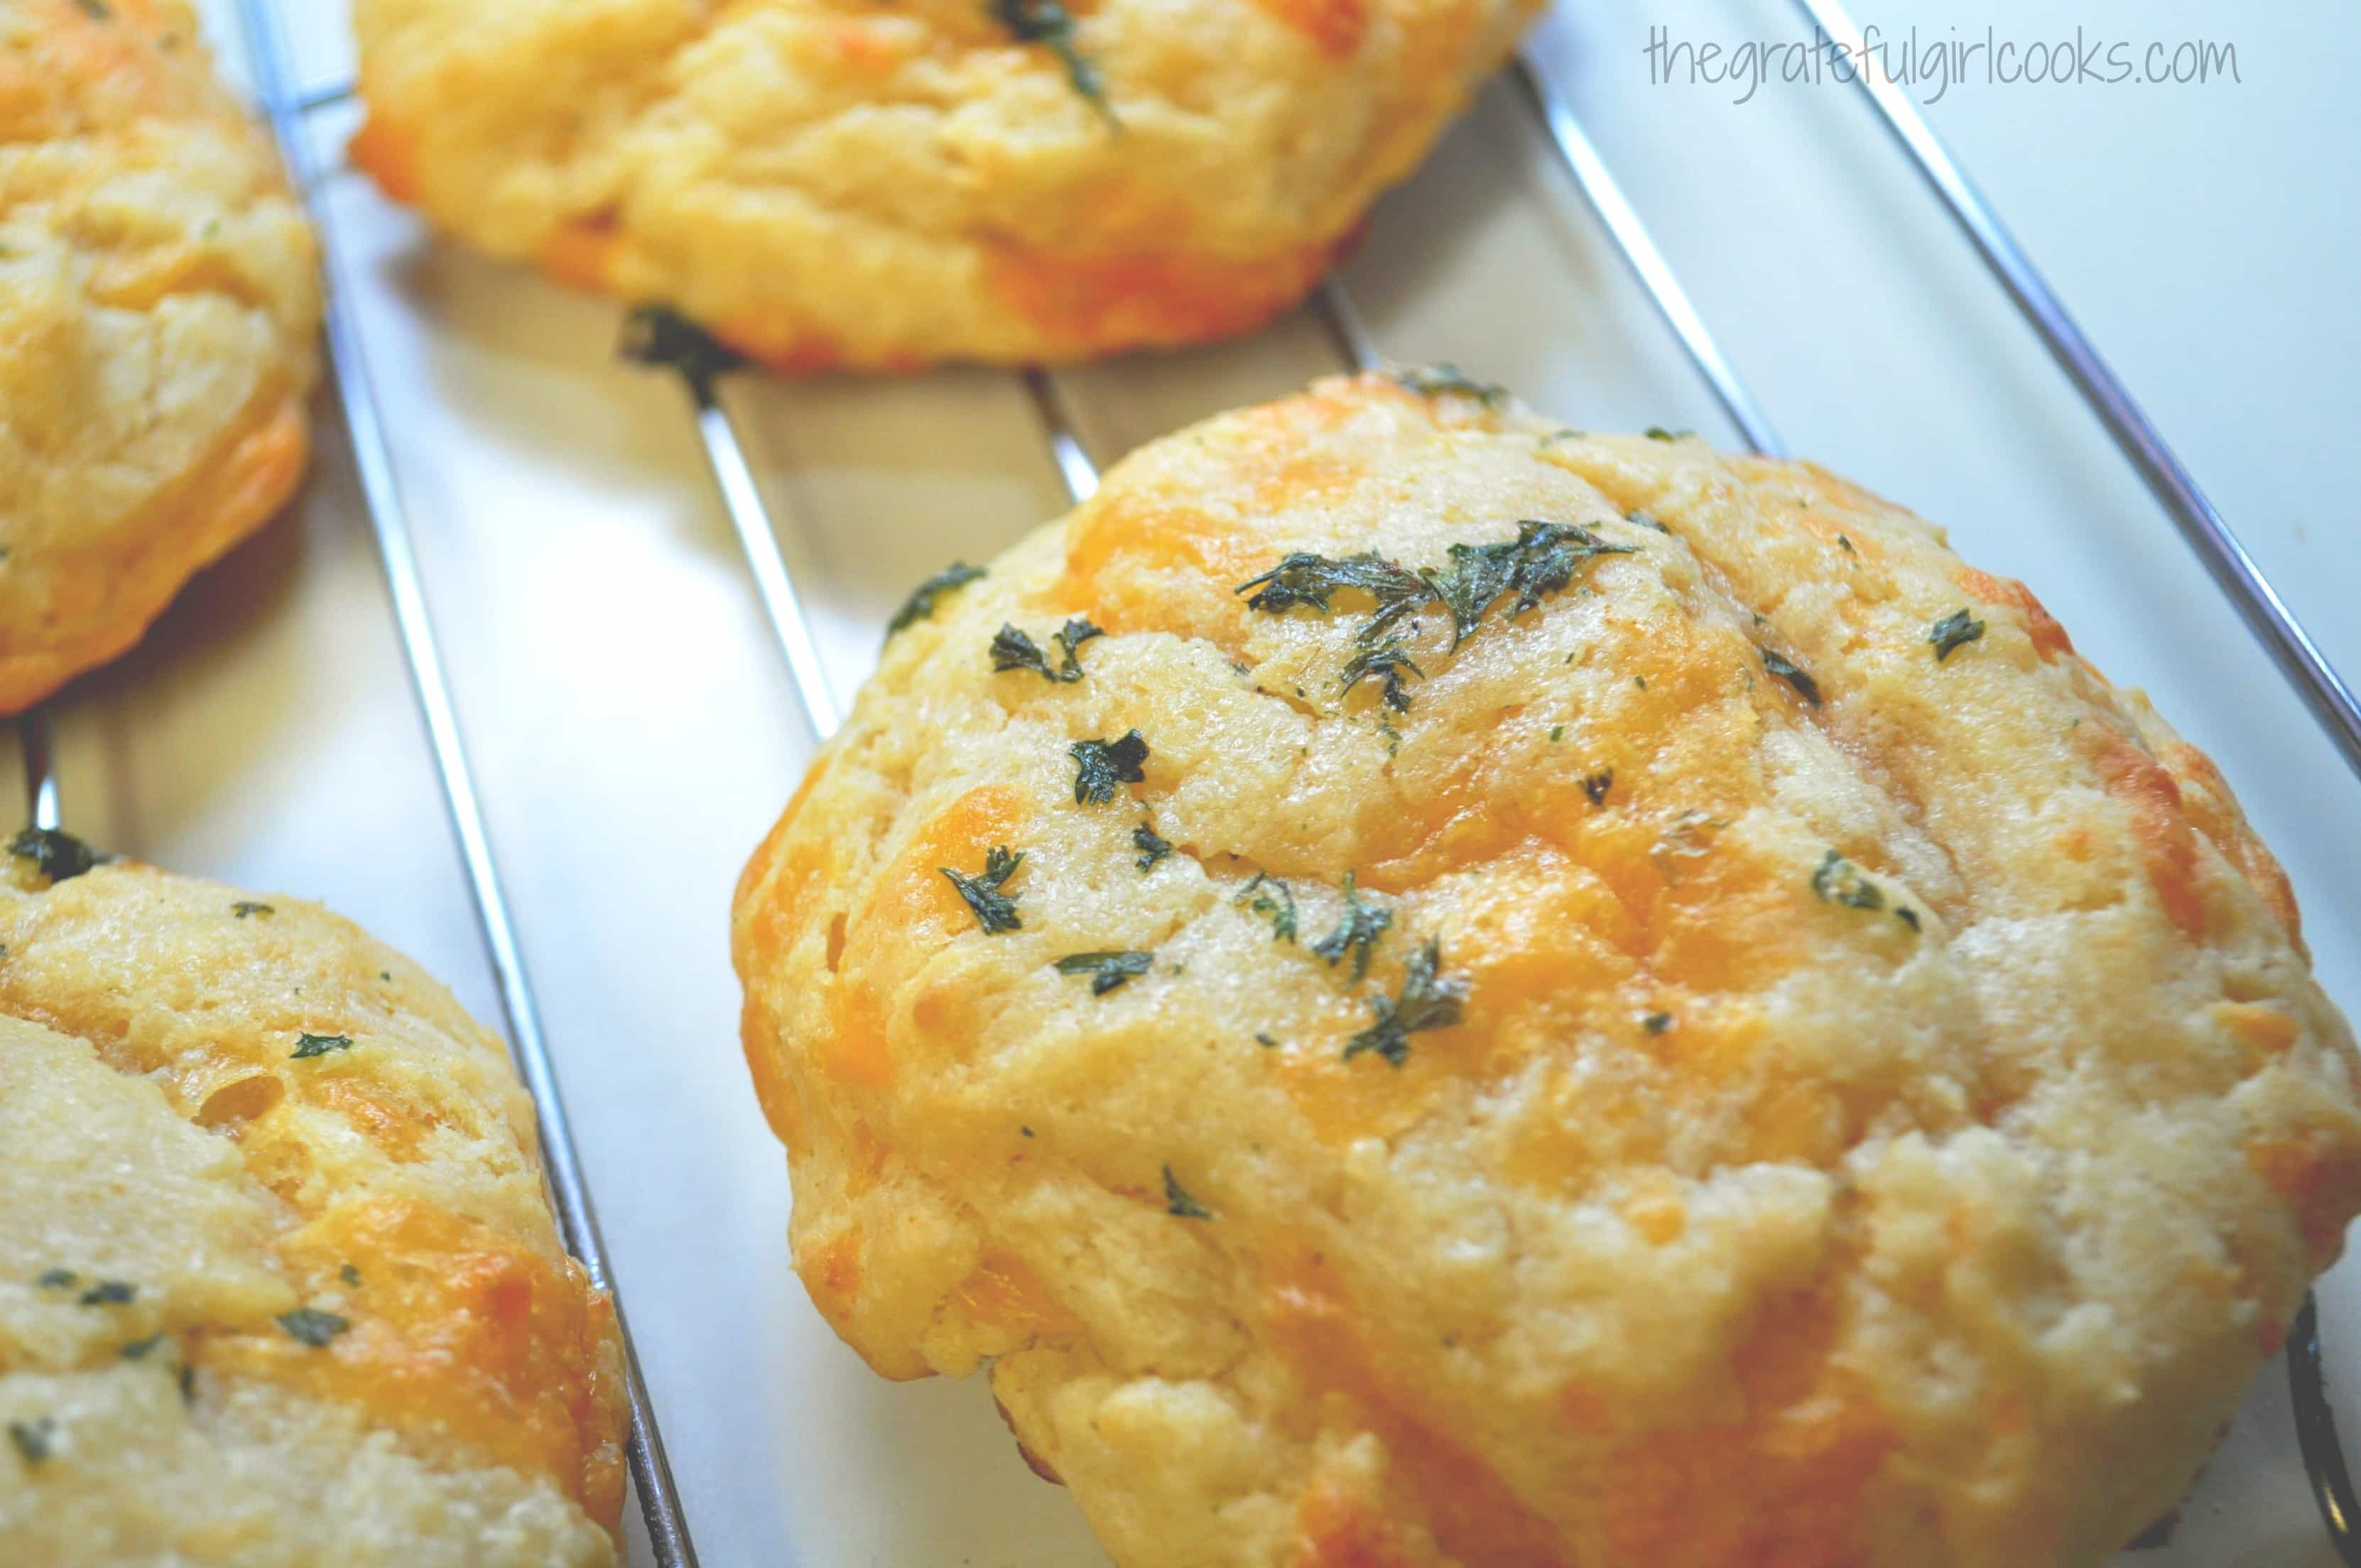 how to make biscuits in oven at home